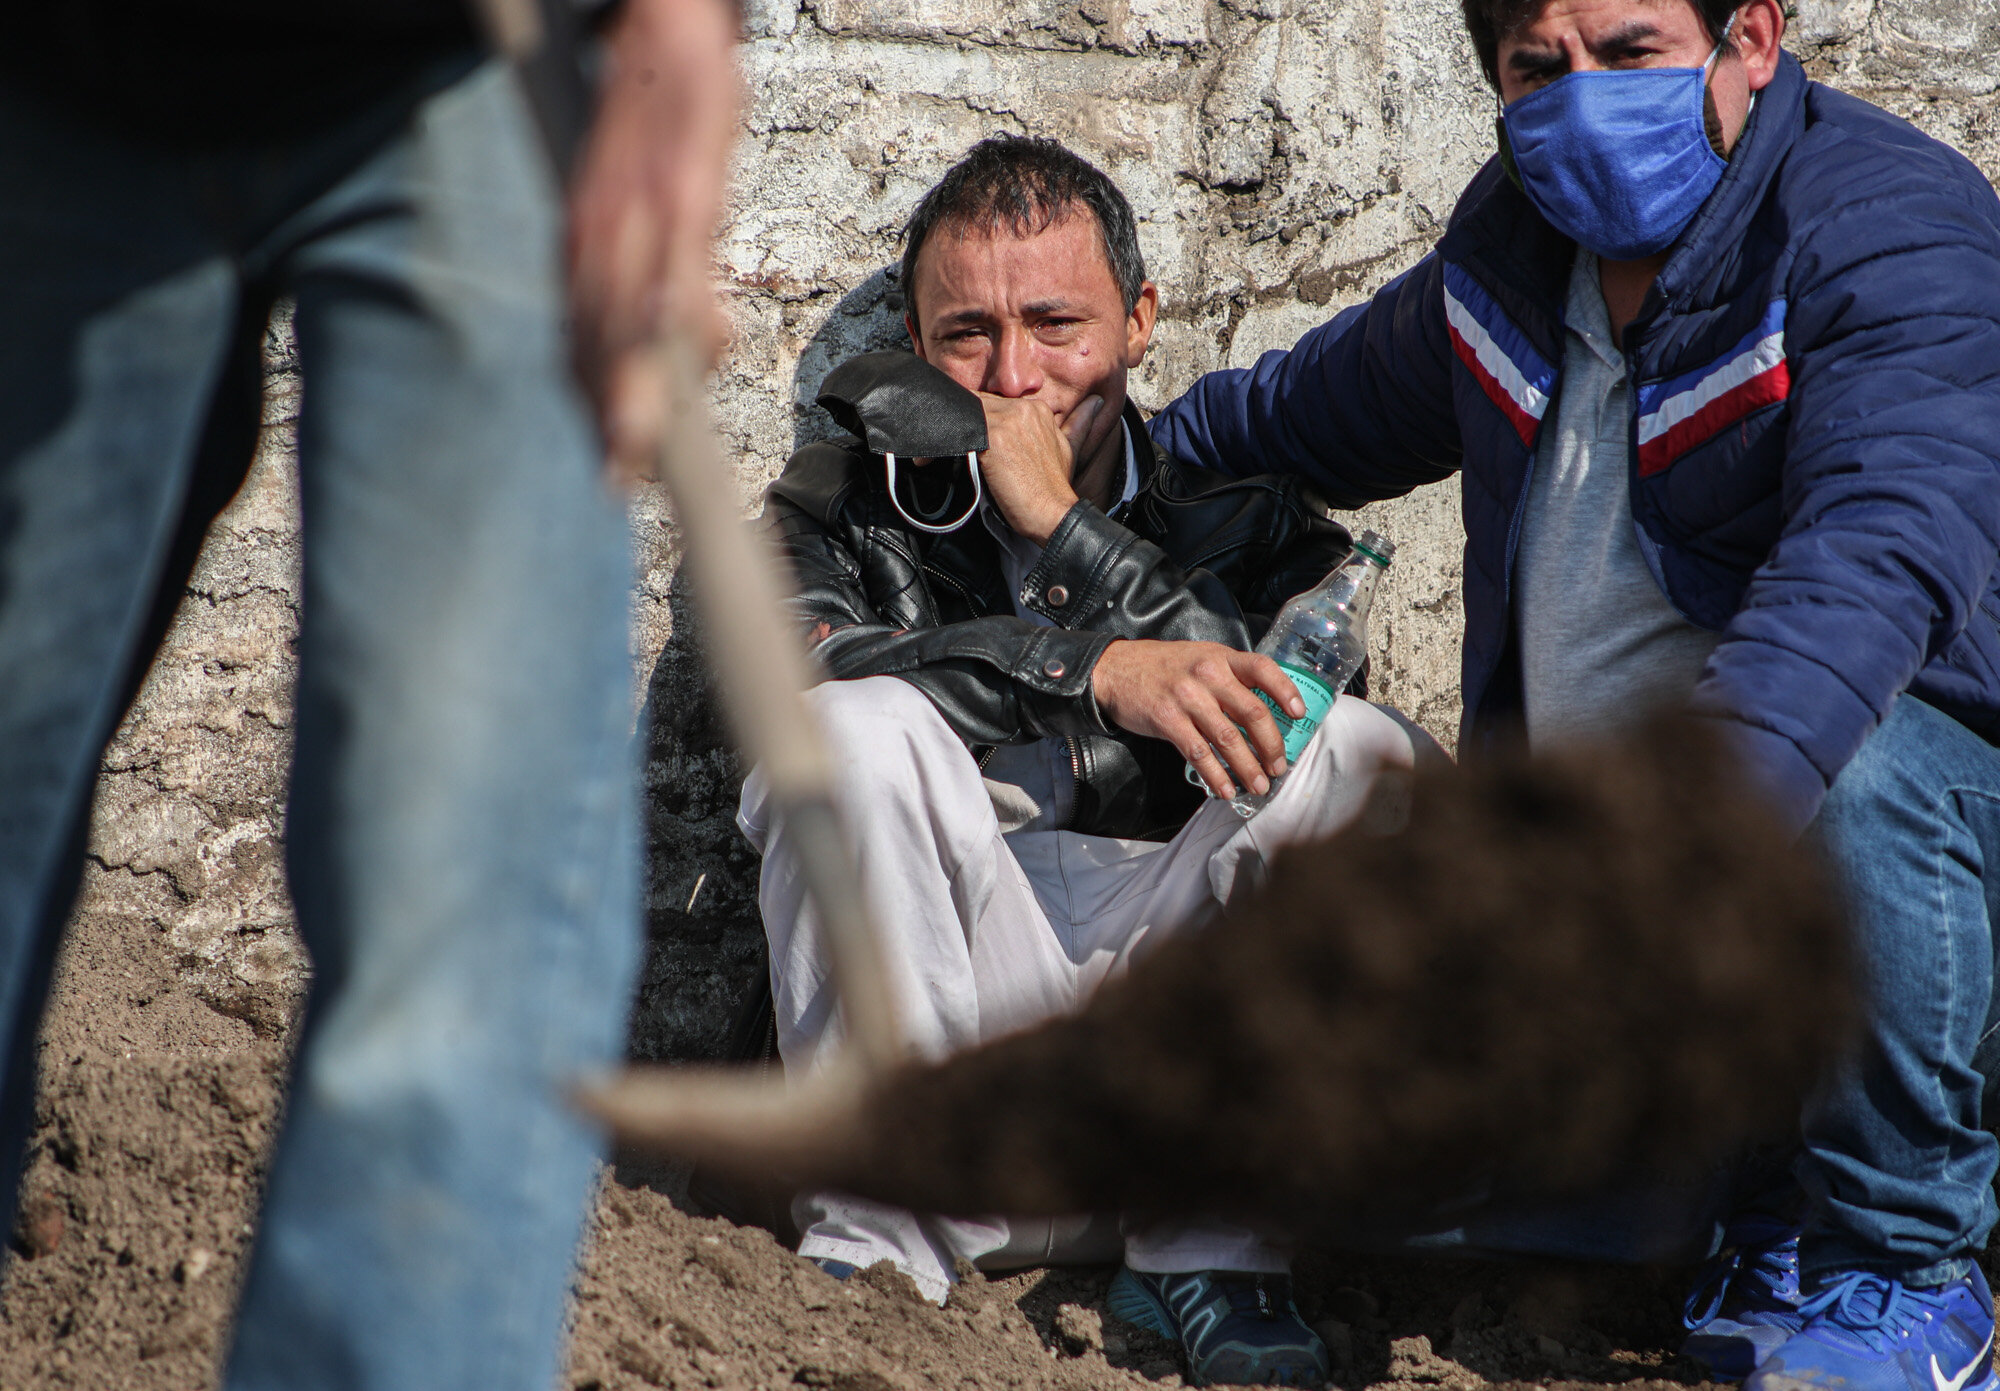 Peruvian migrant Jose Collantes cries as cemetery workers bury his wife Silvia Cano, who he says died of COVID-19, at a Catholic cemetery in Santiago, Chile, on July 3, 2020. Collantes said he preferred to cremate her in order to take the ashes home with him but, due to bureaucracy, had already been waiting two weeks. (AP Photo/Esteban Felix)